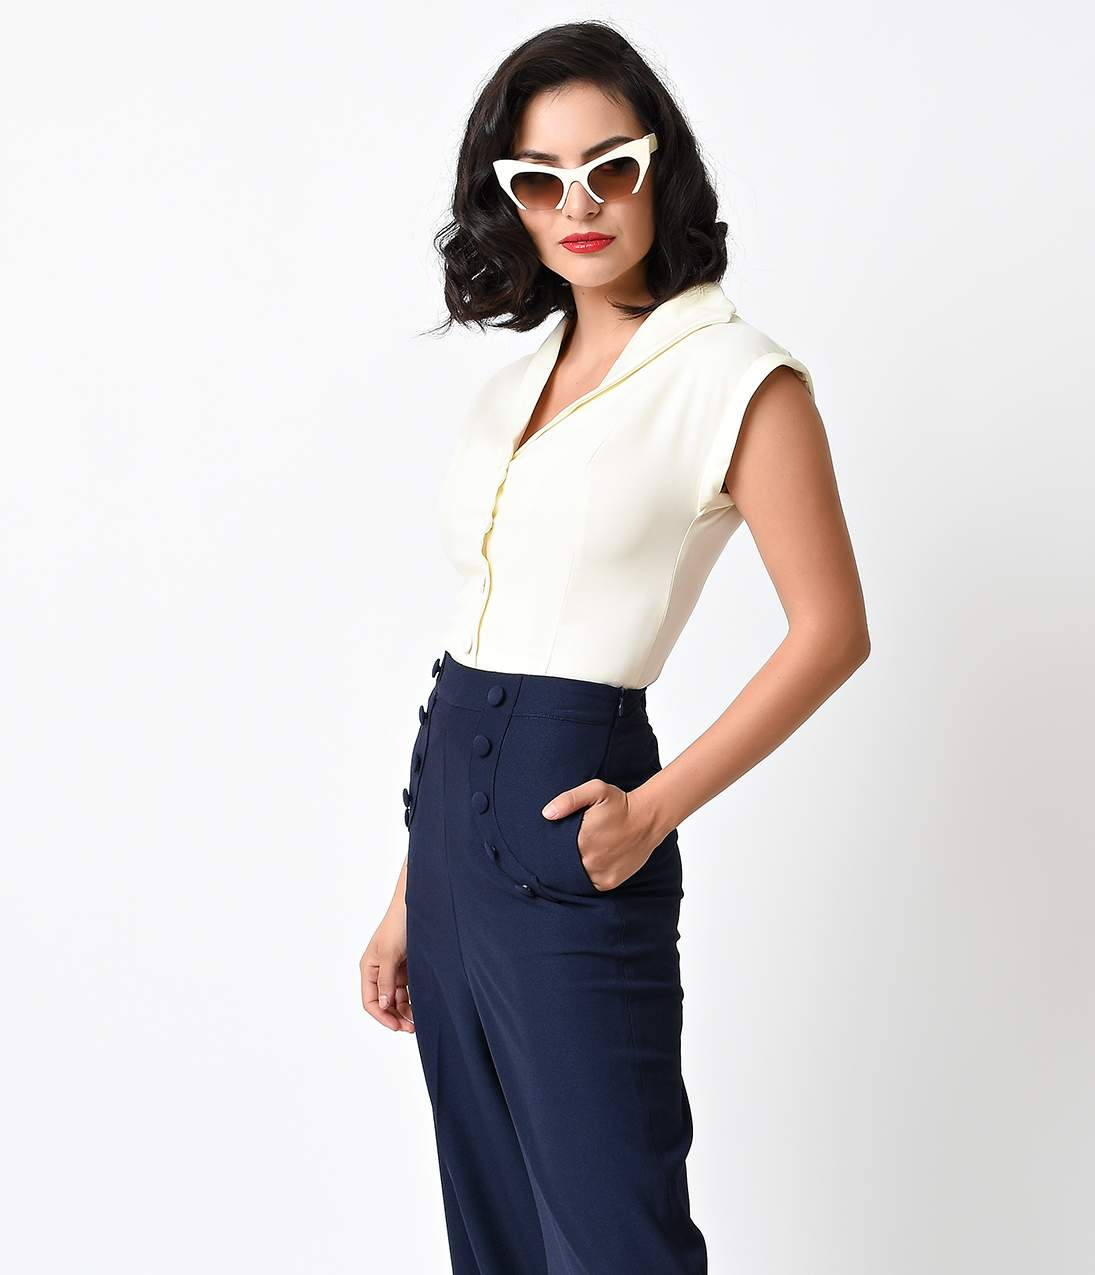 1950s Fashion History: Women's Clothing Banned Vintage Off White Button Up Cap Sleeve Blouse $48.00 AT vintagedancer.com